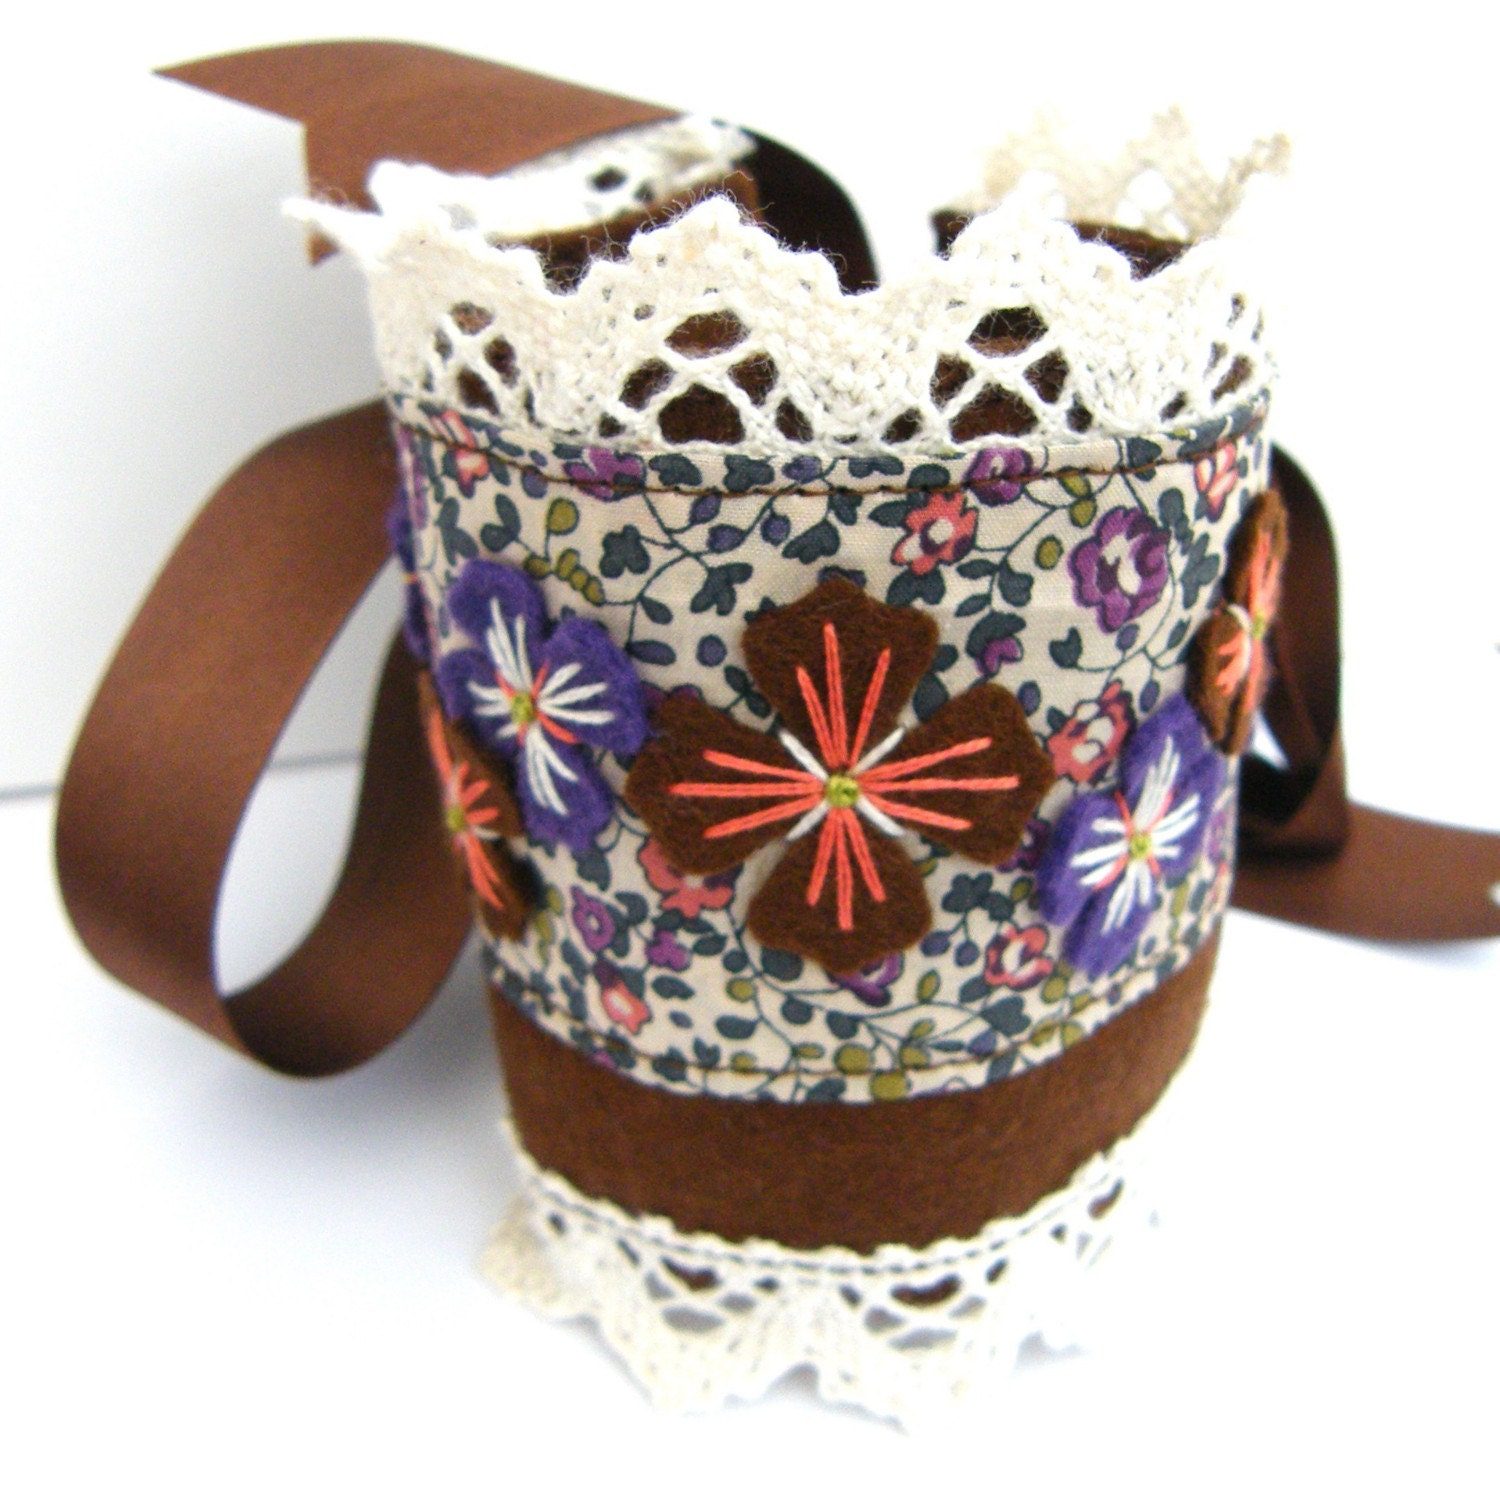 LIBERTY OF LONDON FABRIC AND FELT CUFF WITH FREEFORM EMBROIDERY AND COTTON CROCHET LACE